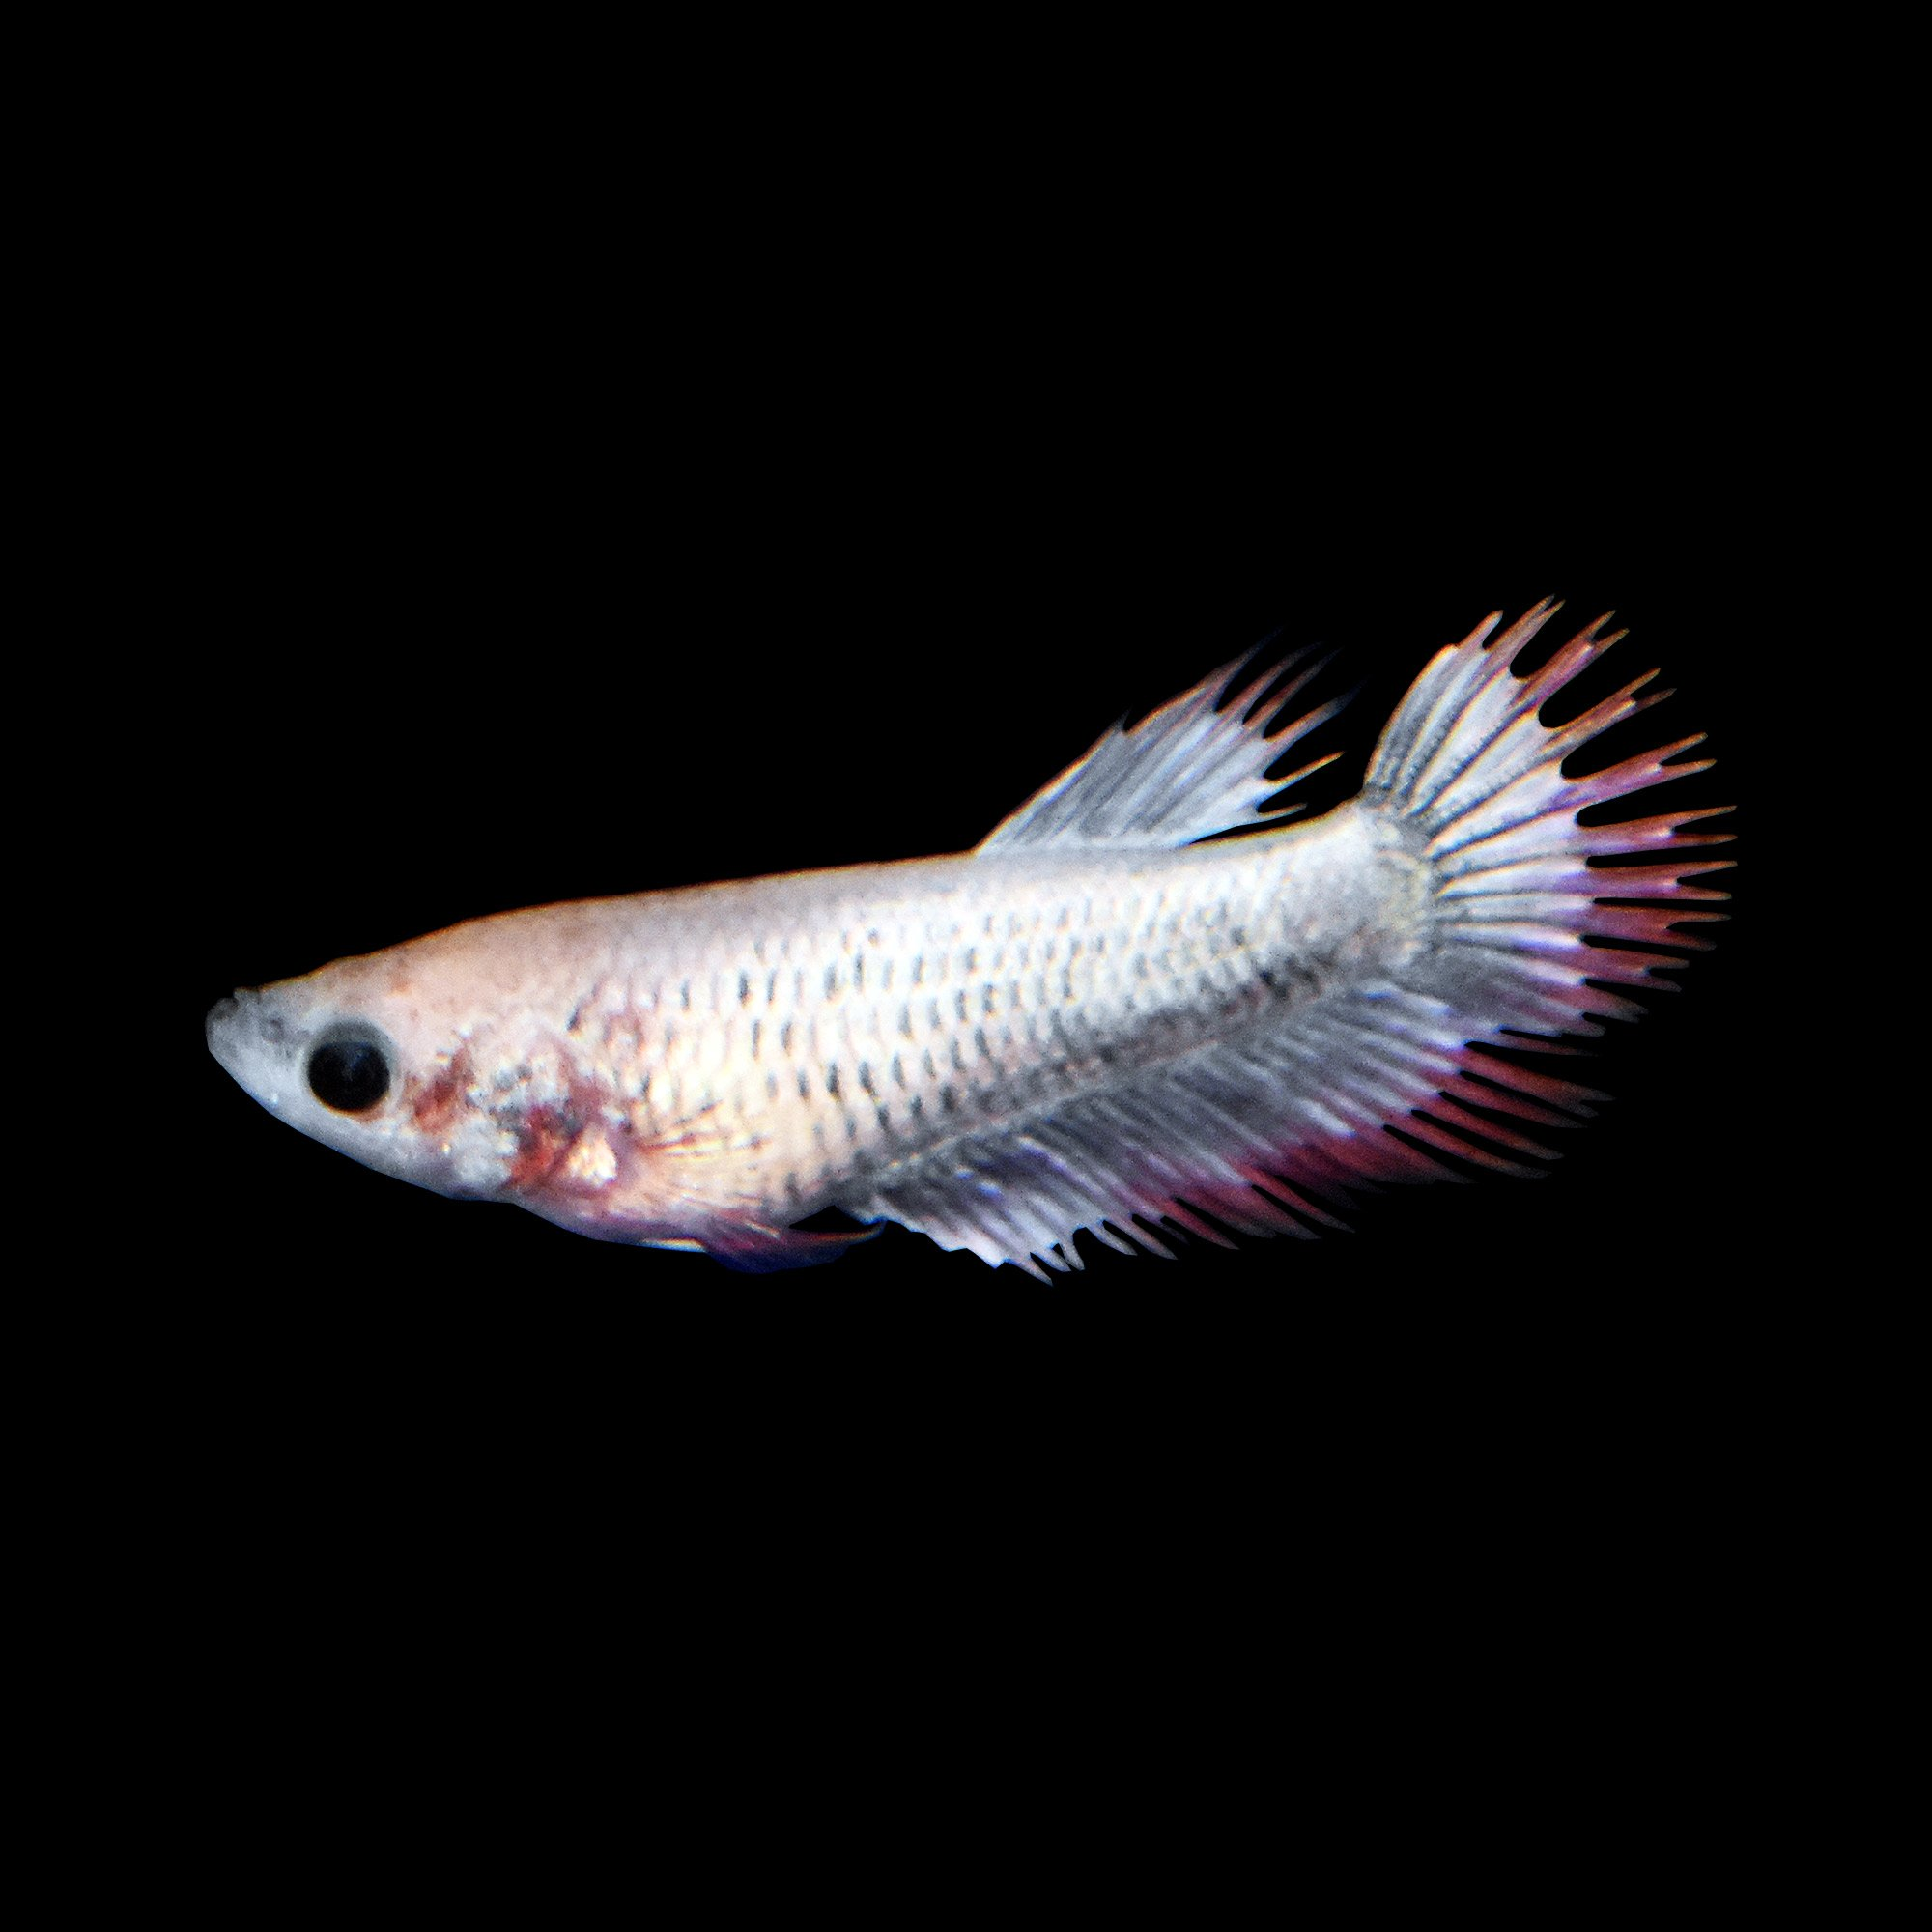 Female Crowntail Betta Fish | Siamese Fighting Fish ...